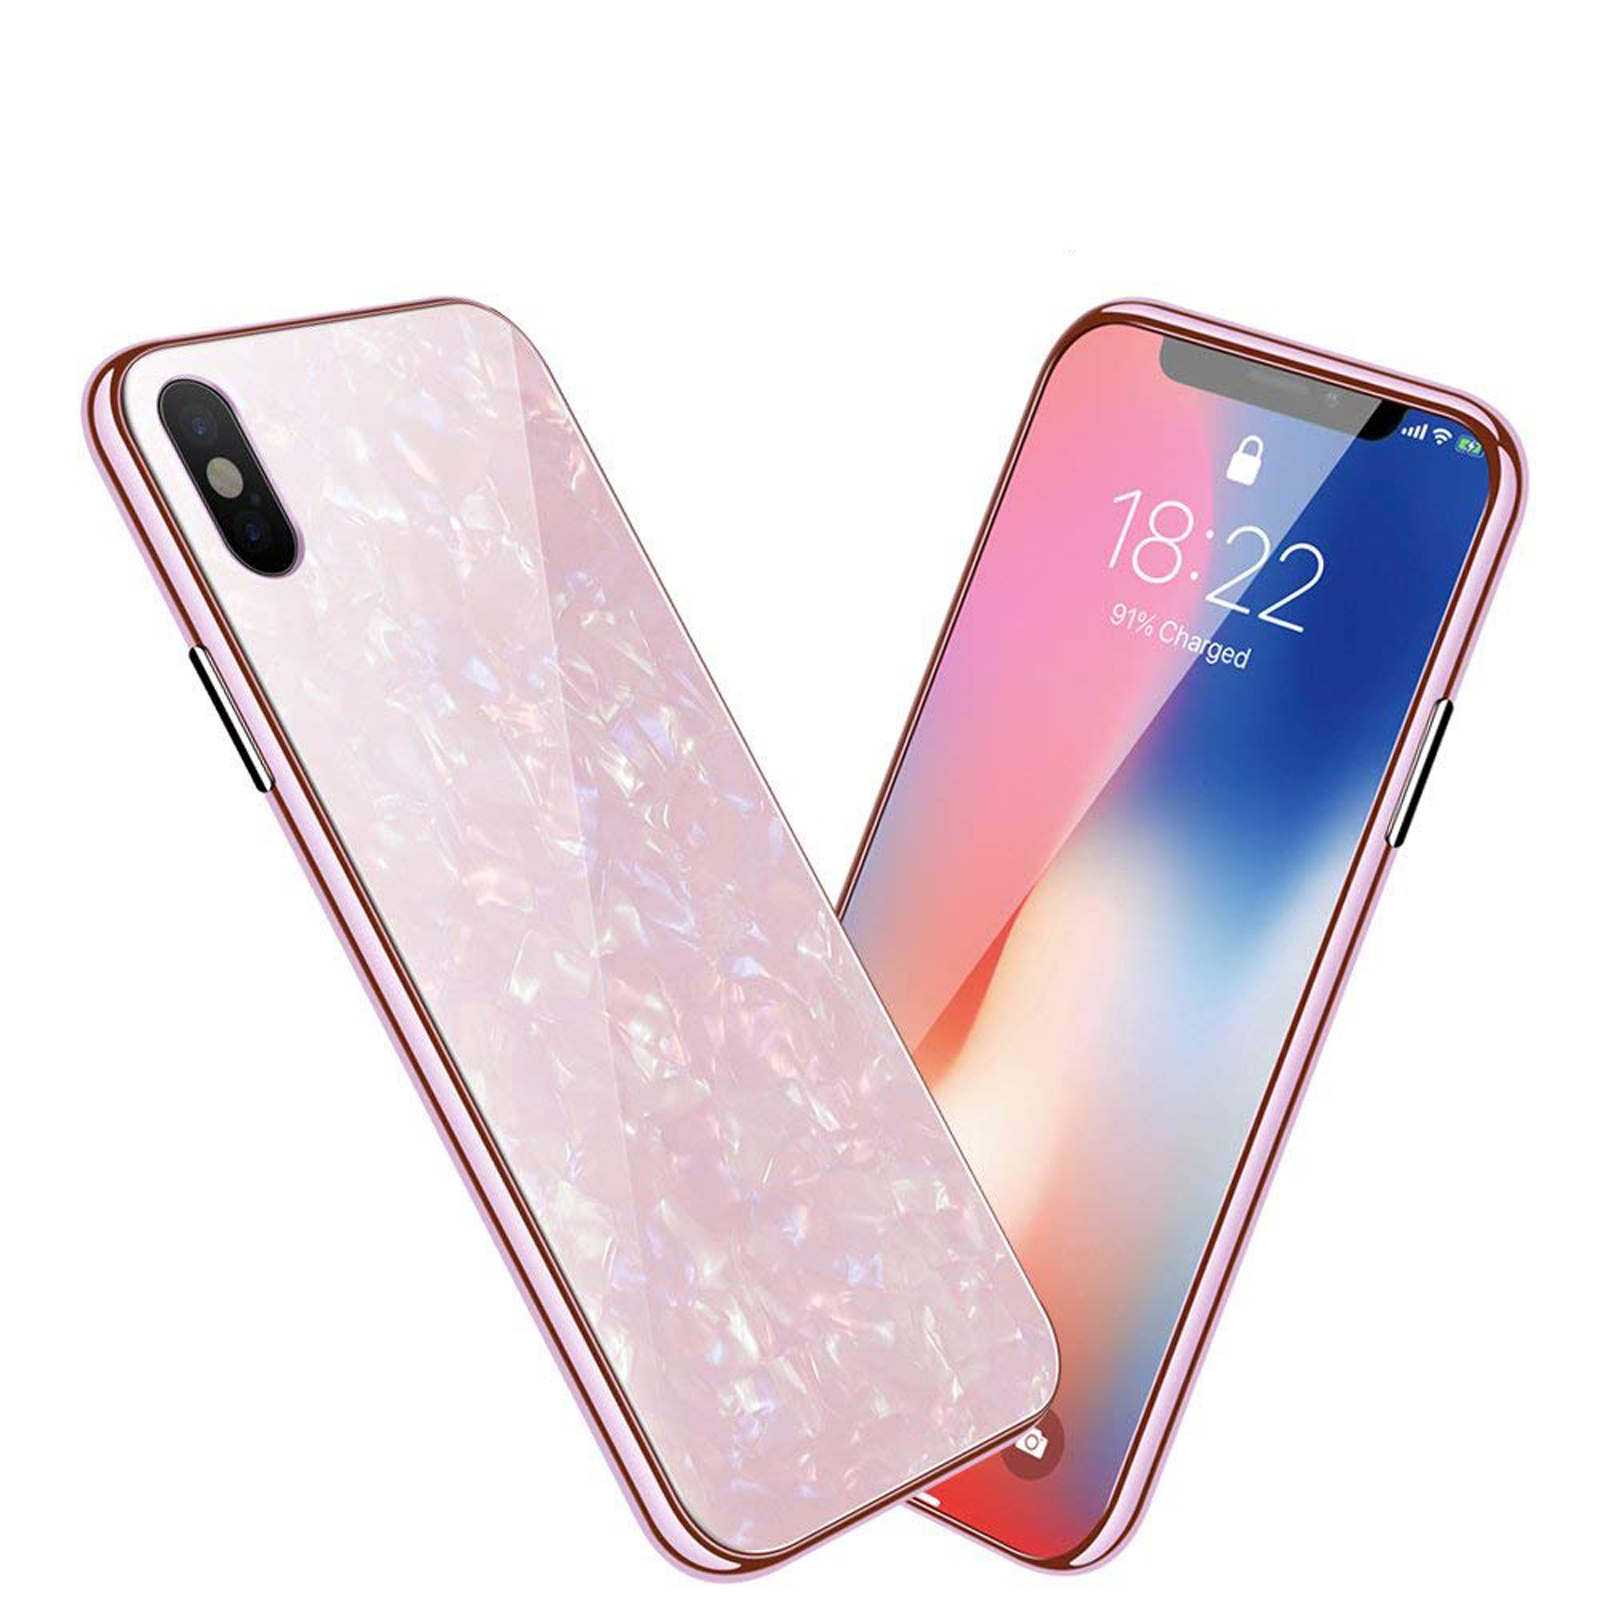 Luxury-Marble-Tempered-Glass-Case-Cover-For-Apple-iPhone-X-XS-XR-Max-10-8-7-6s-6 miniature 36